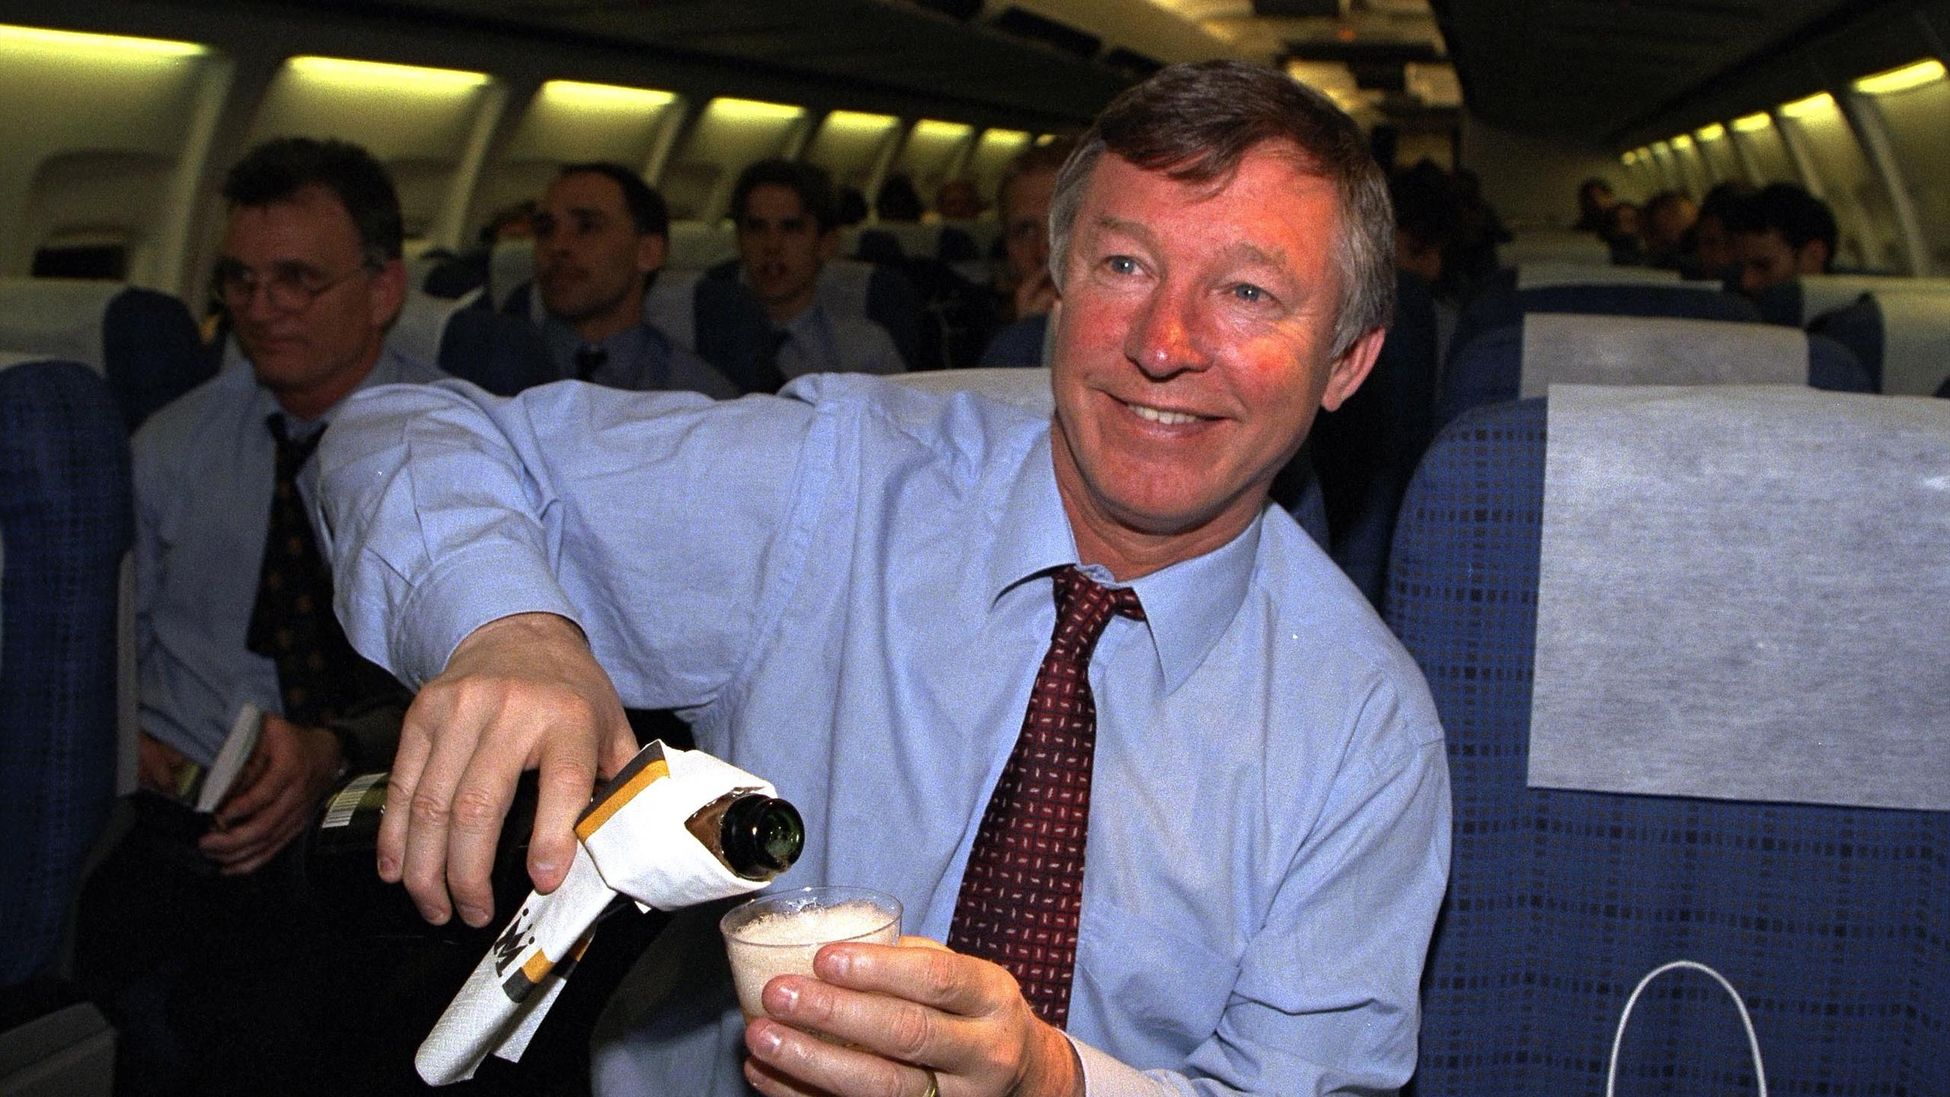 Sir Alex Ferguson celebrates after Manchester United beat Juventus in the semi-finals